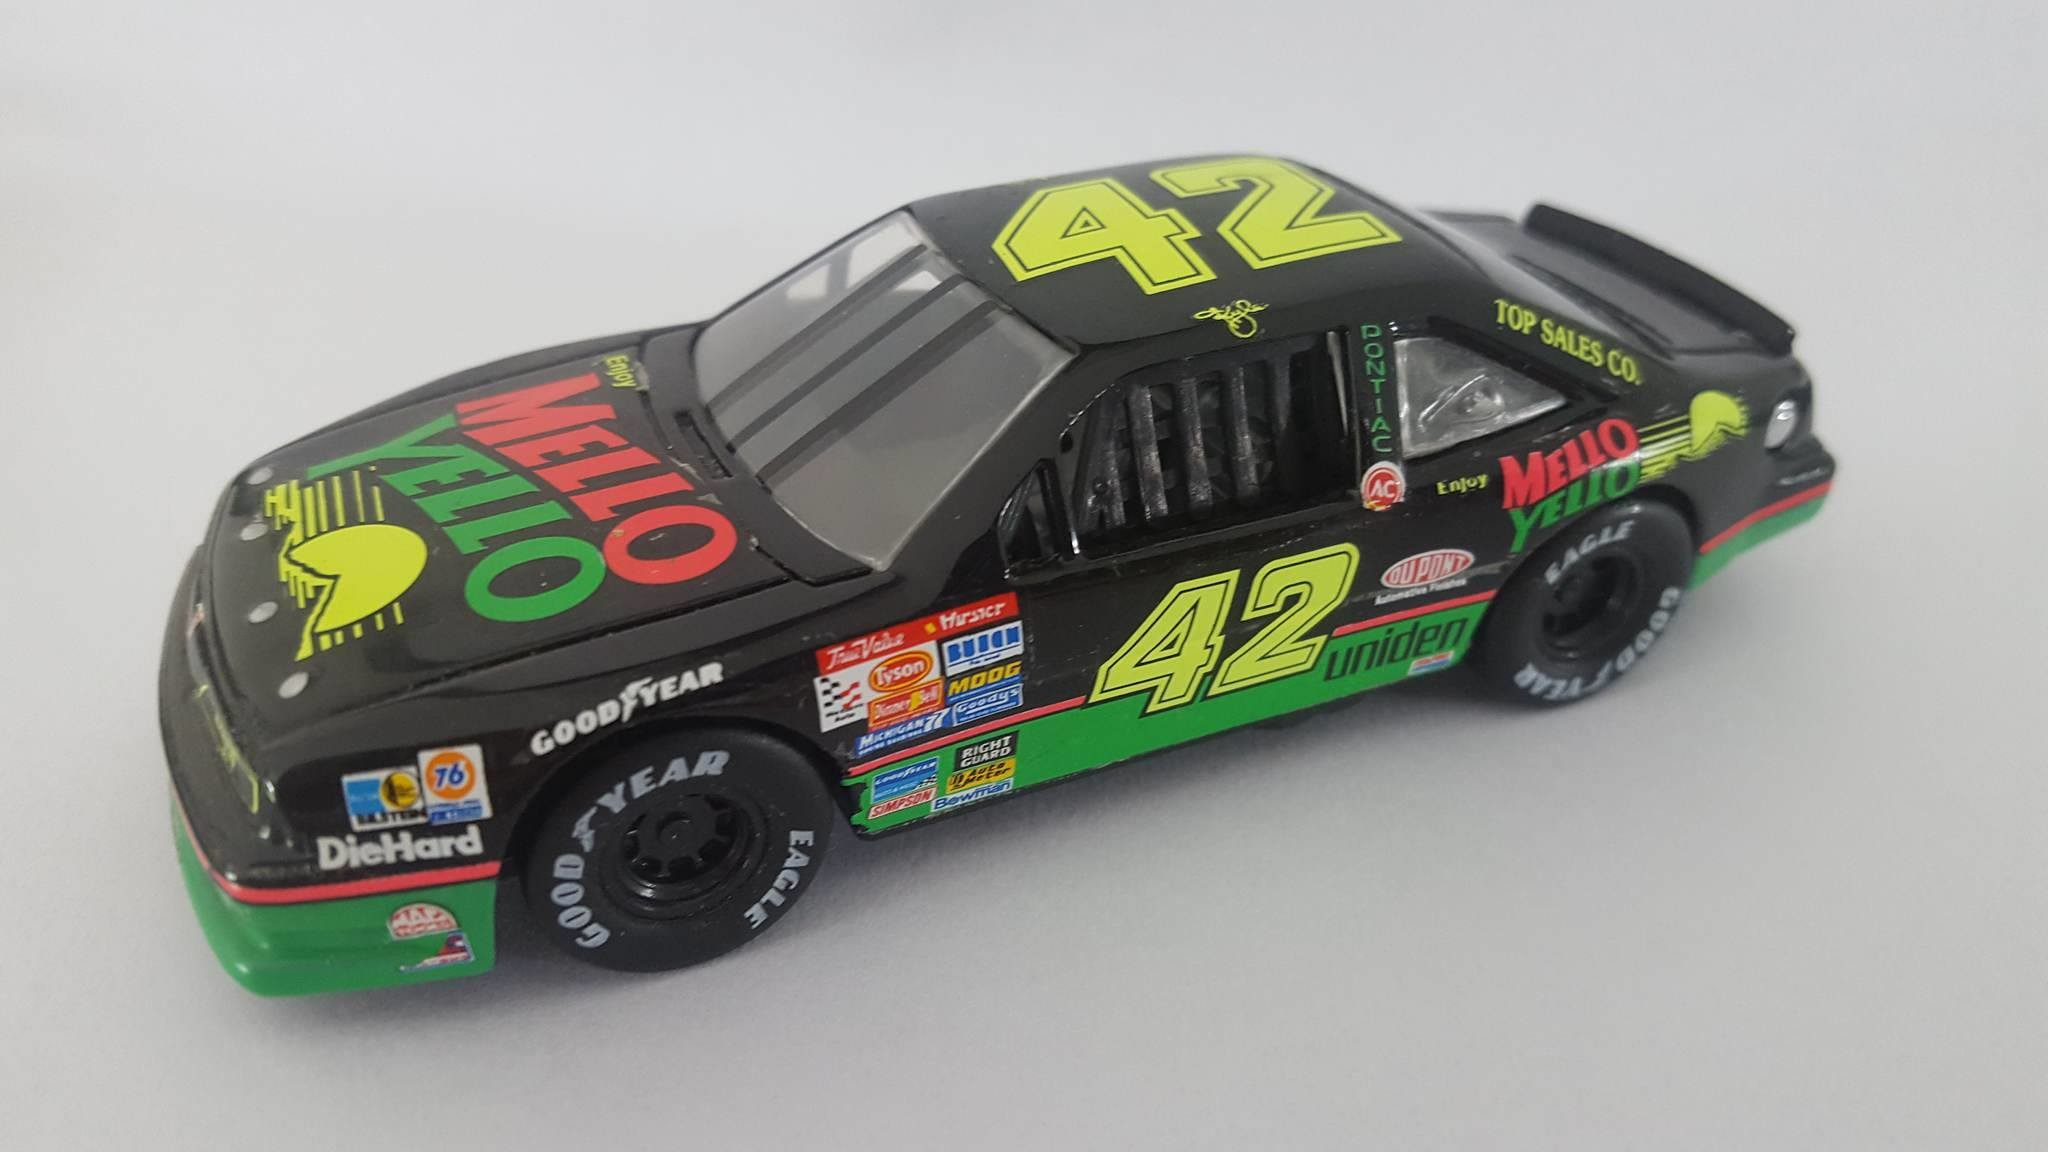 1992 - Pontiac Grand Prix - #42 - Mello Yello - Kyle Petty